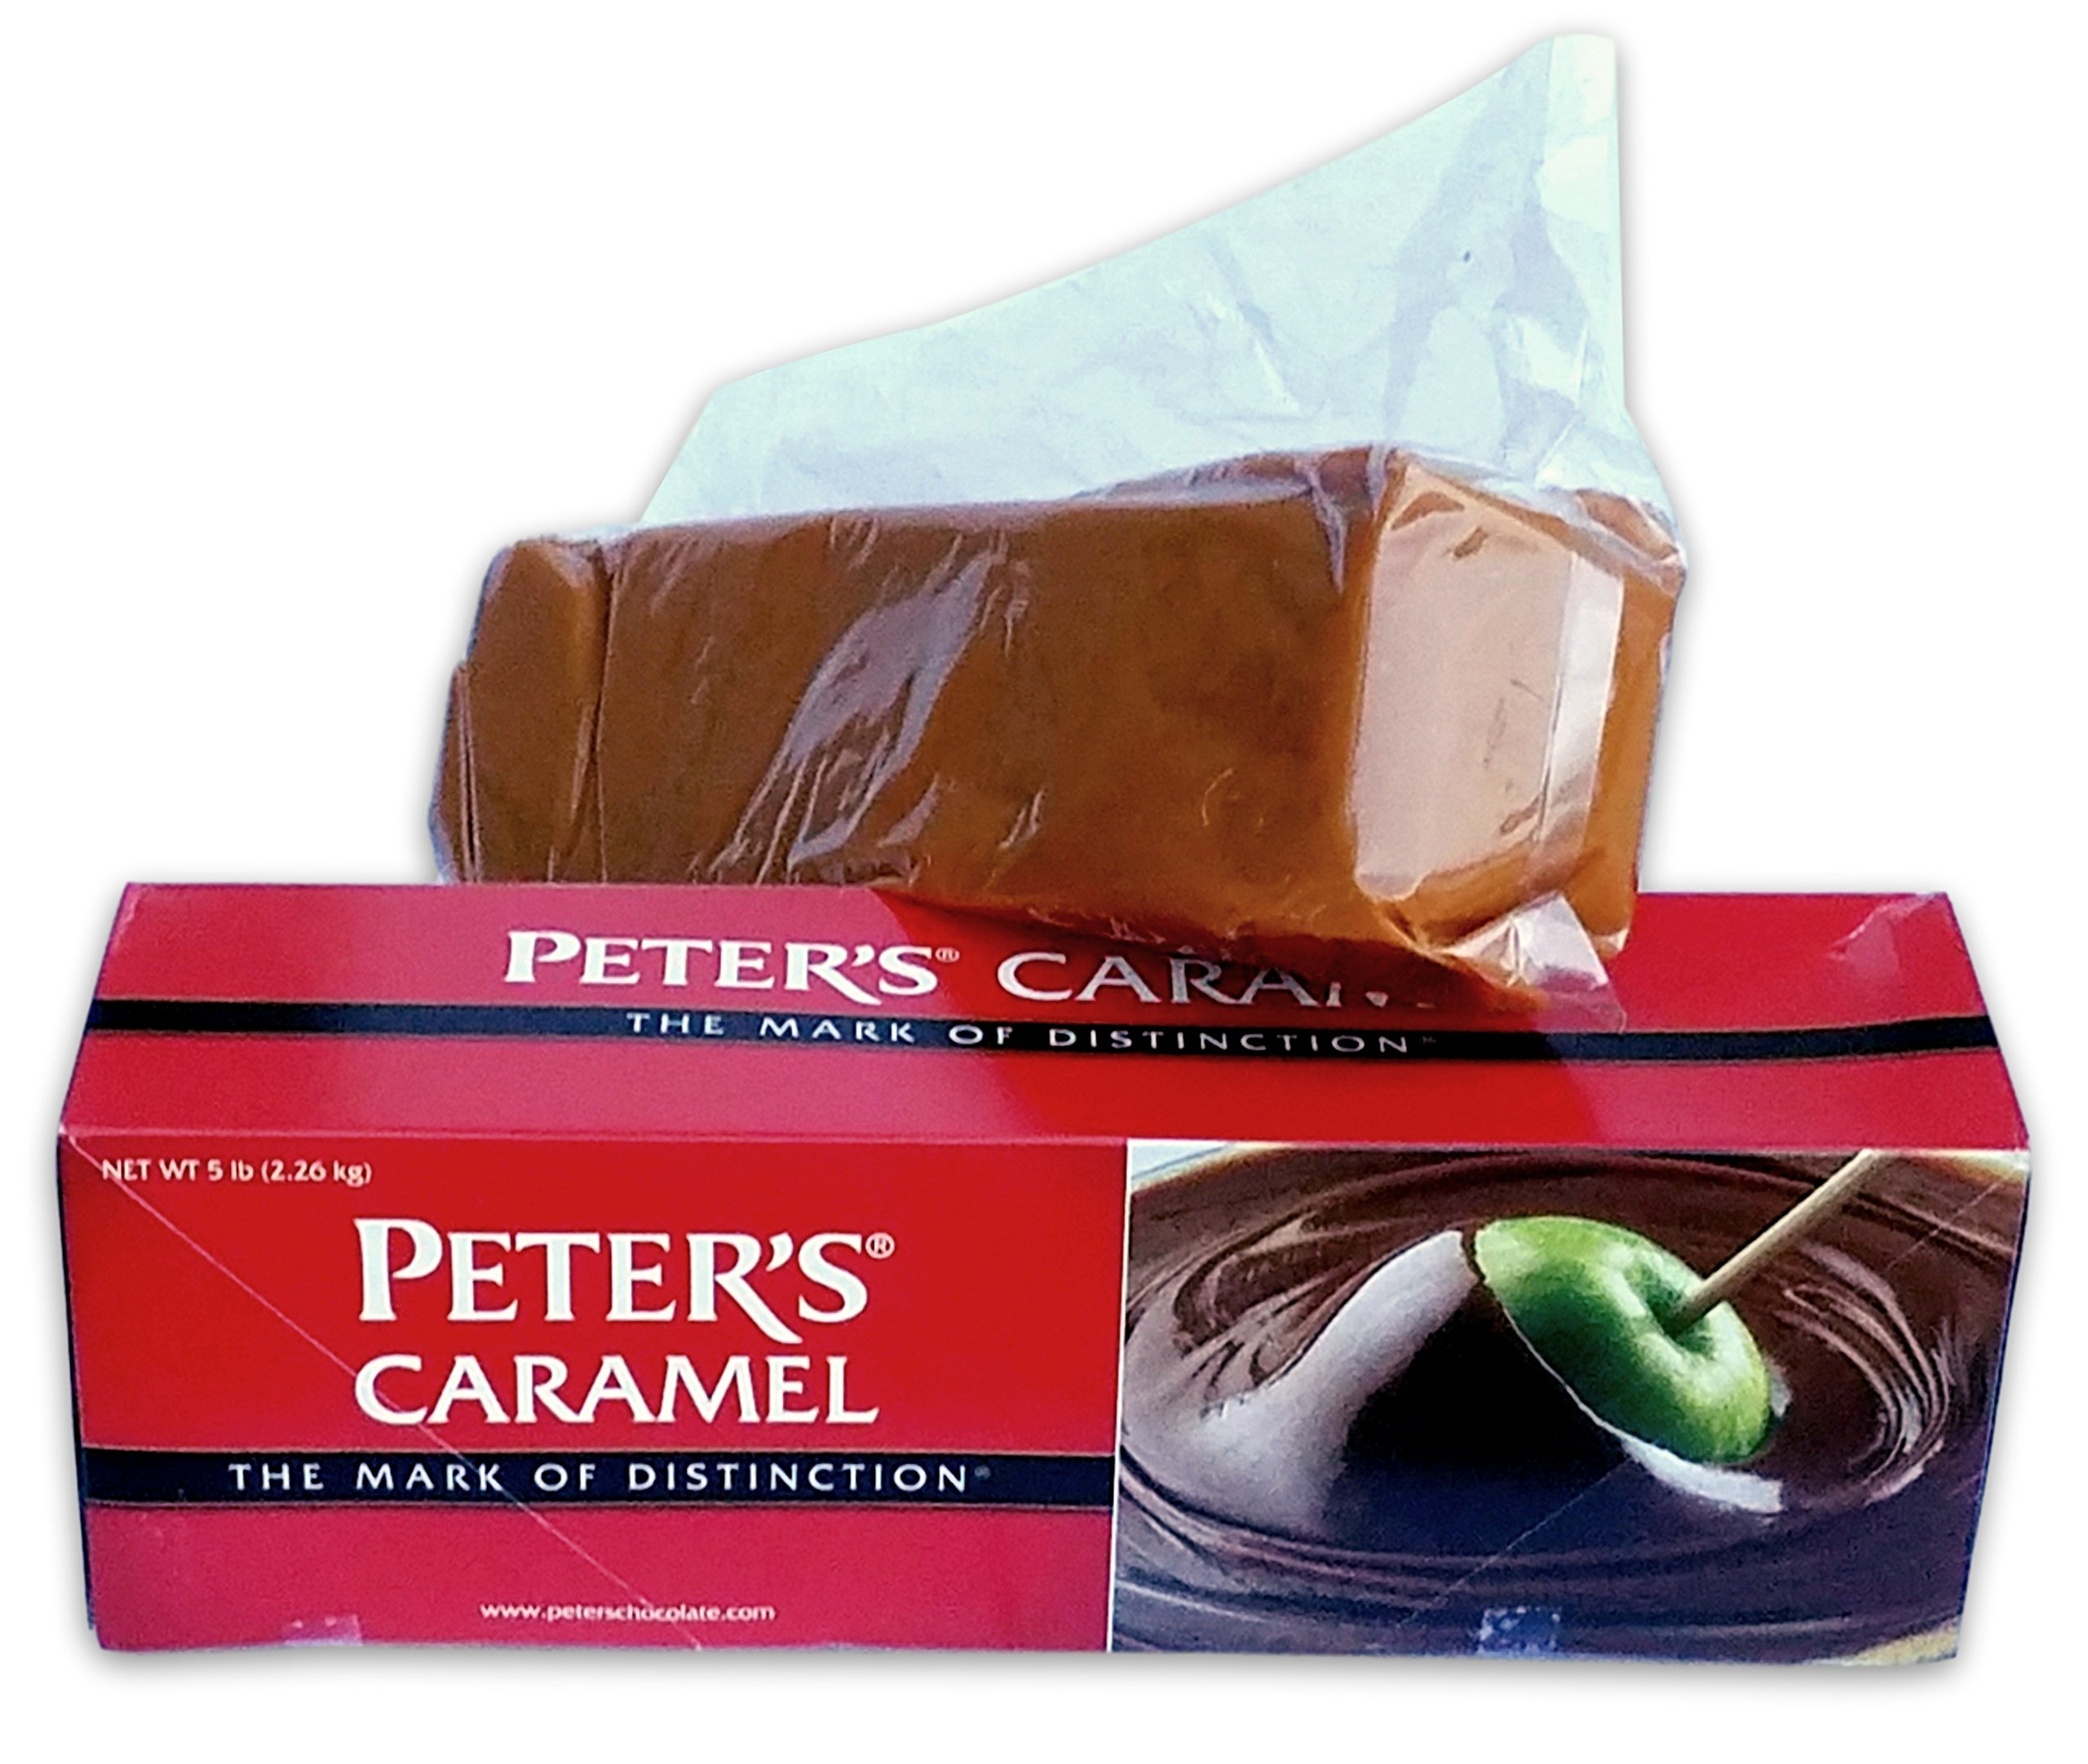 Peter's Creamy Caramel, Ideal to make Caramel Apples, or use on Ice Cream, 5 Lb. Block (Case of 6)